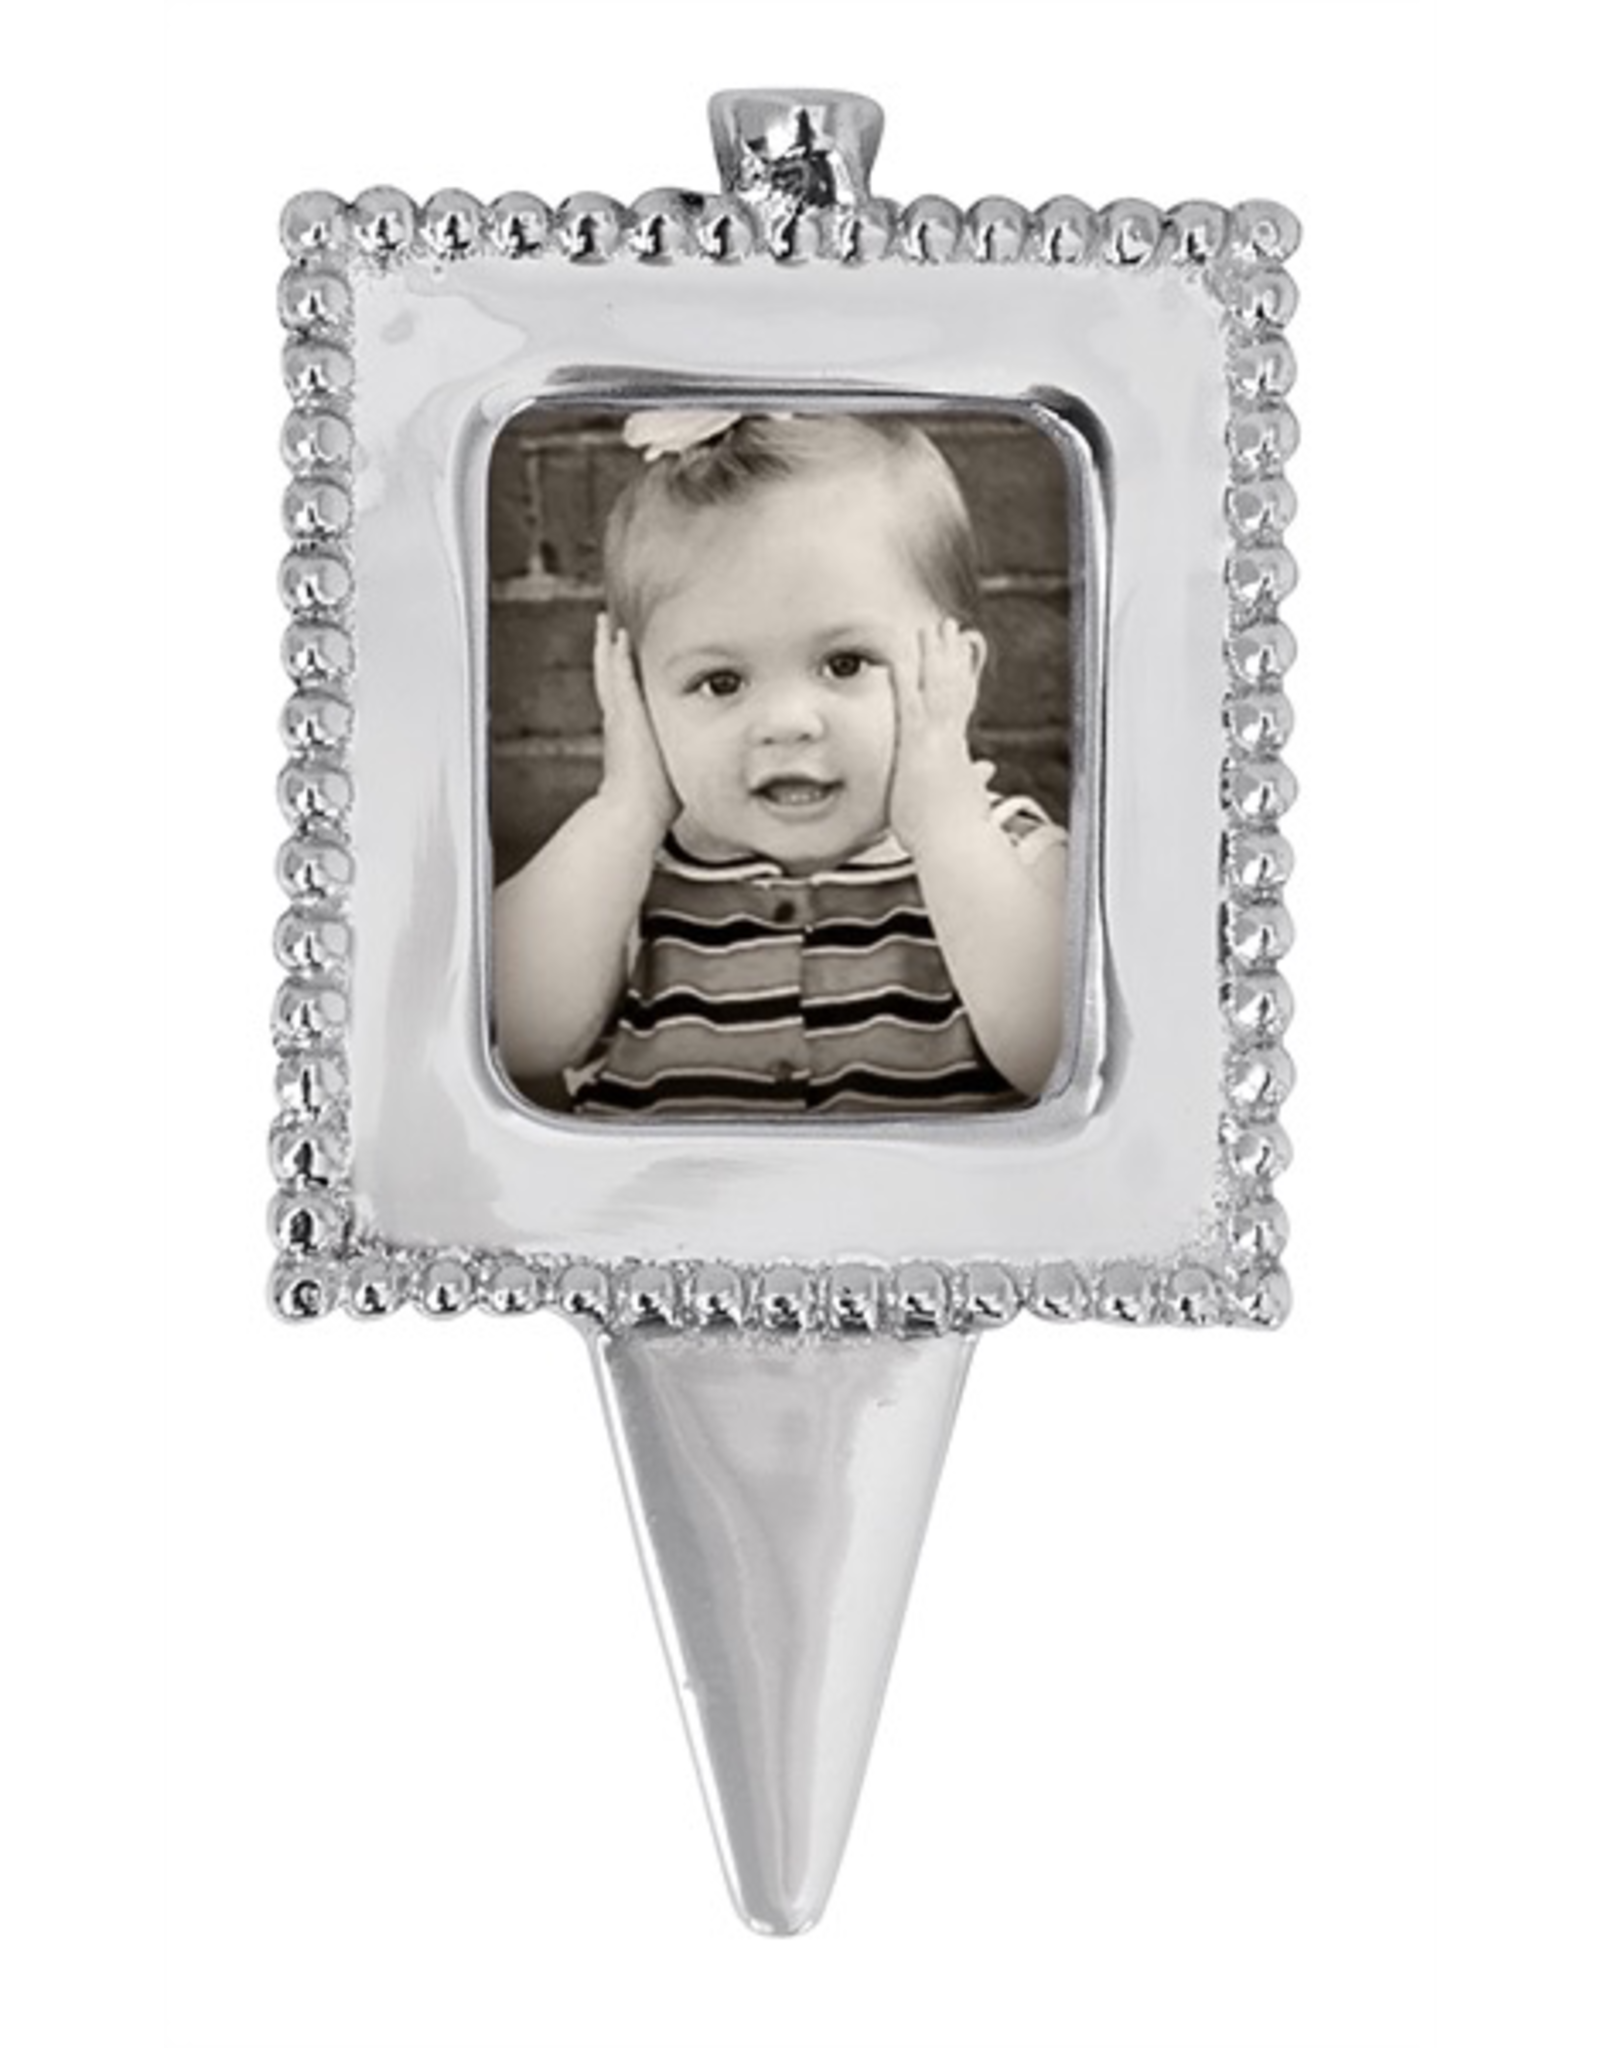 Mariposa Beaded Photo Birthday Candle Holder String of Pearls Collection